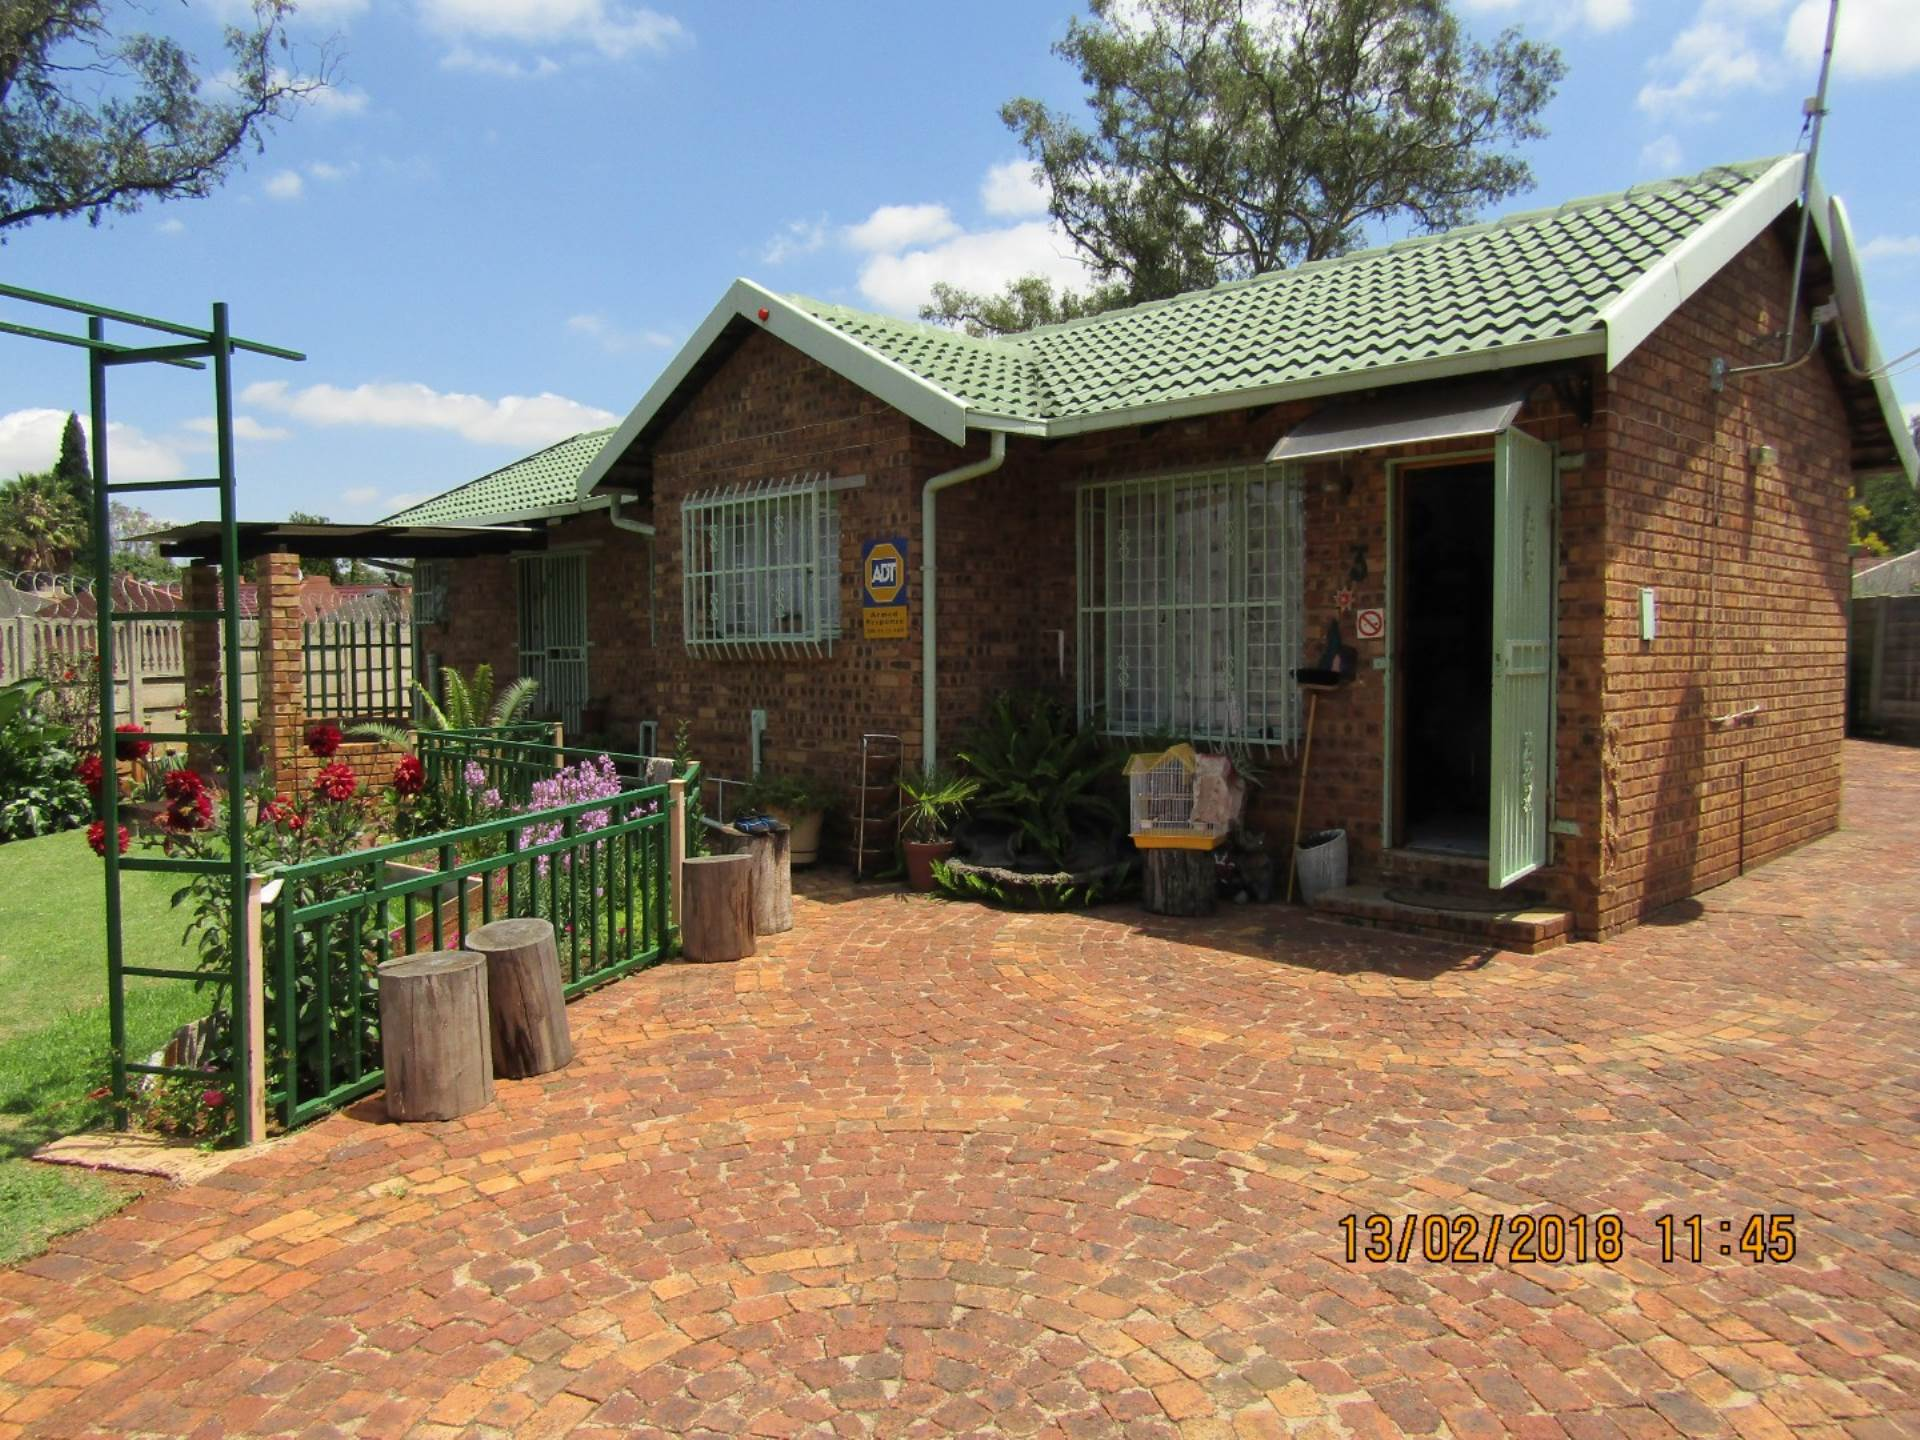 2 BedroomHouse For Sale In Pollak Park